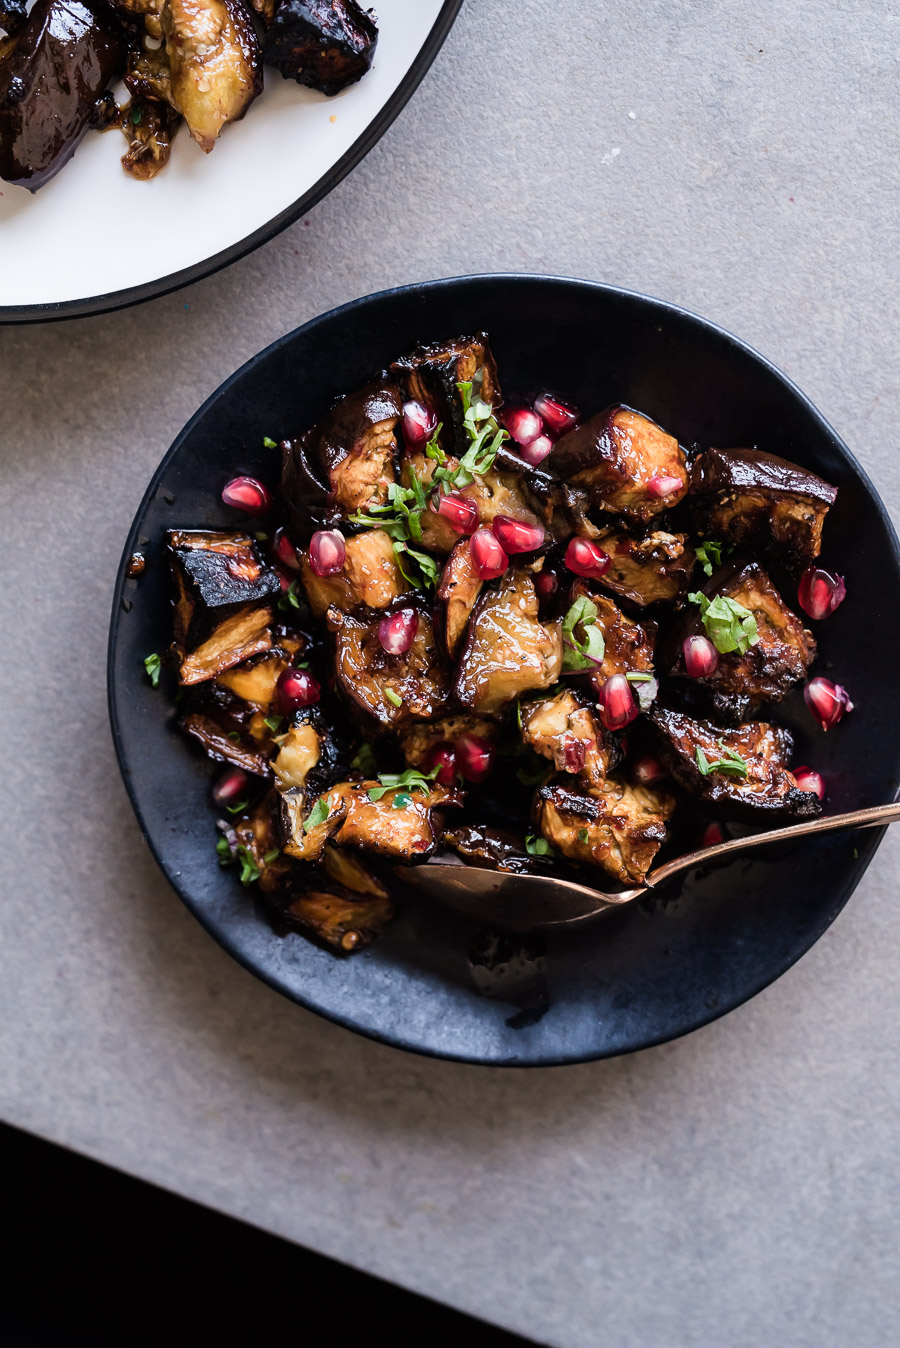 Pomegranate Molasses Harissa Roasted Eggplant